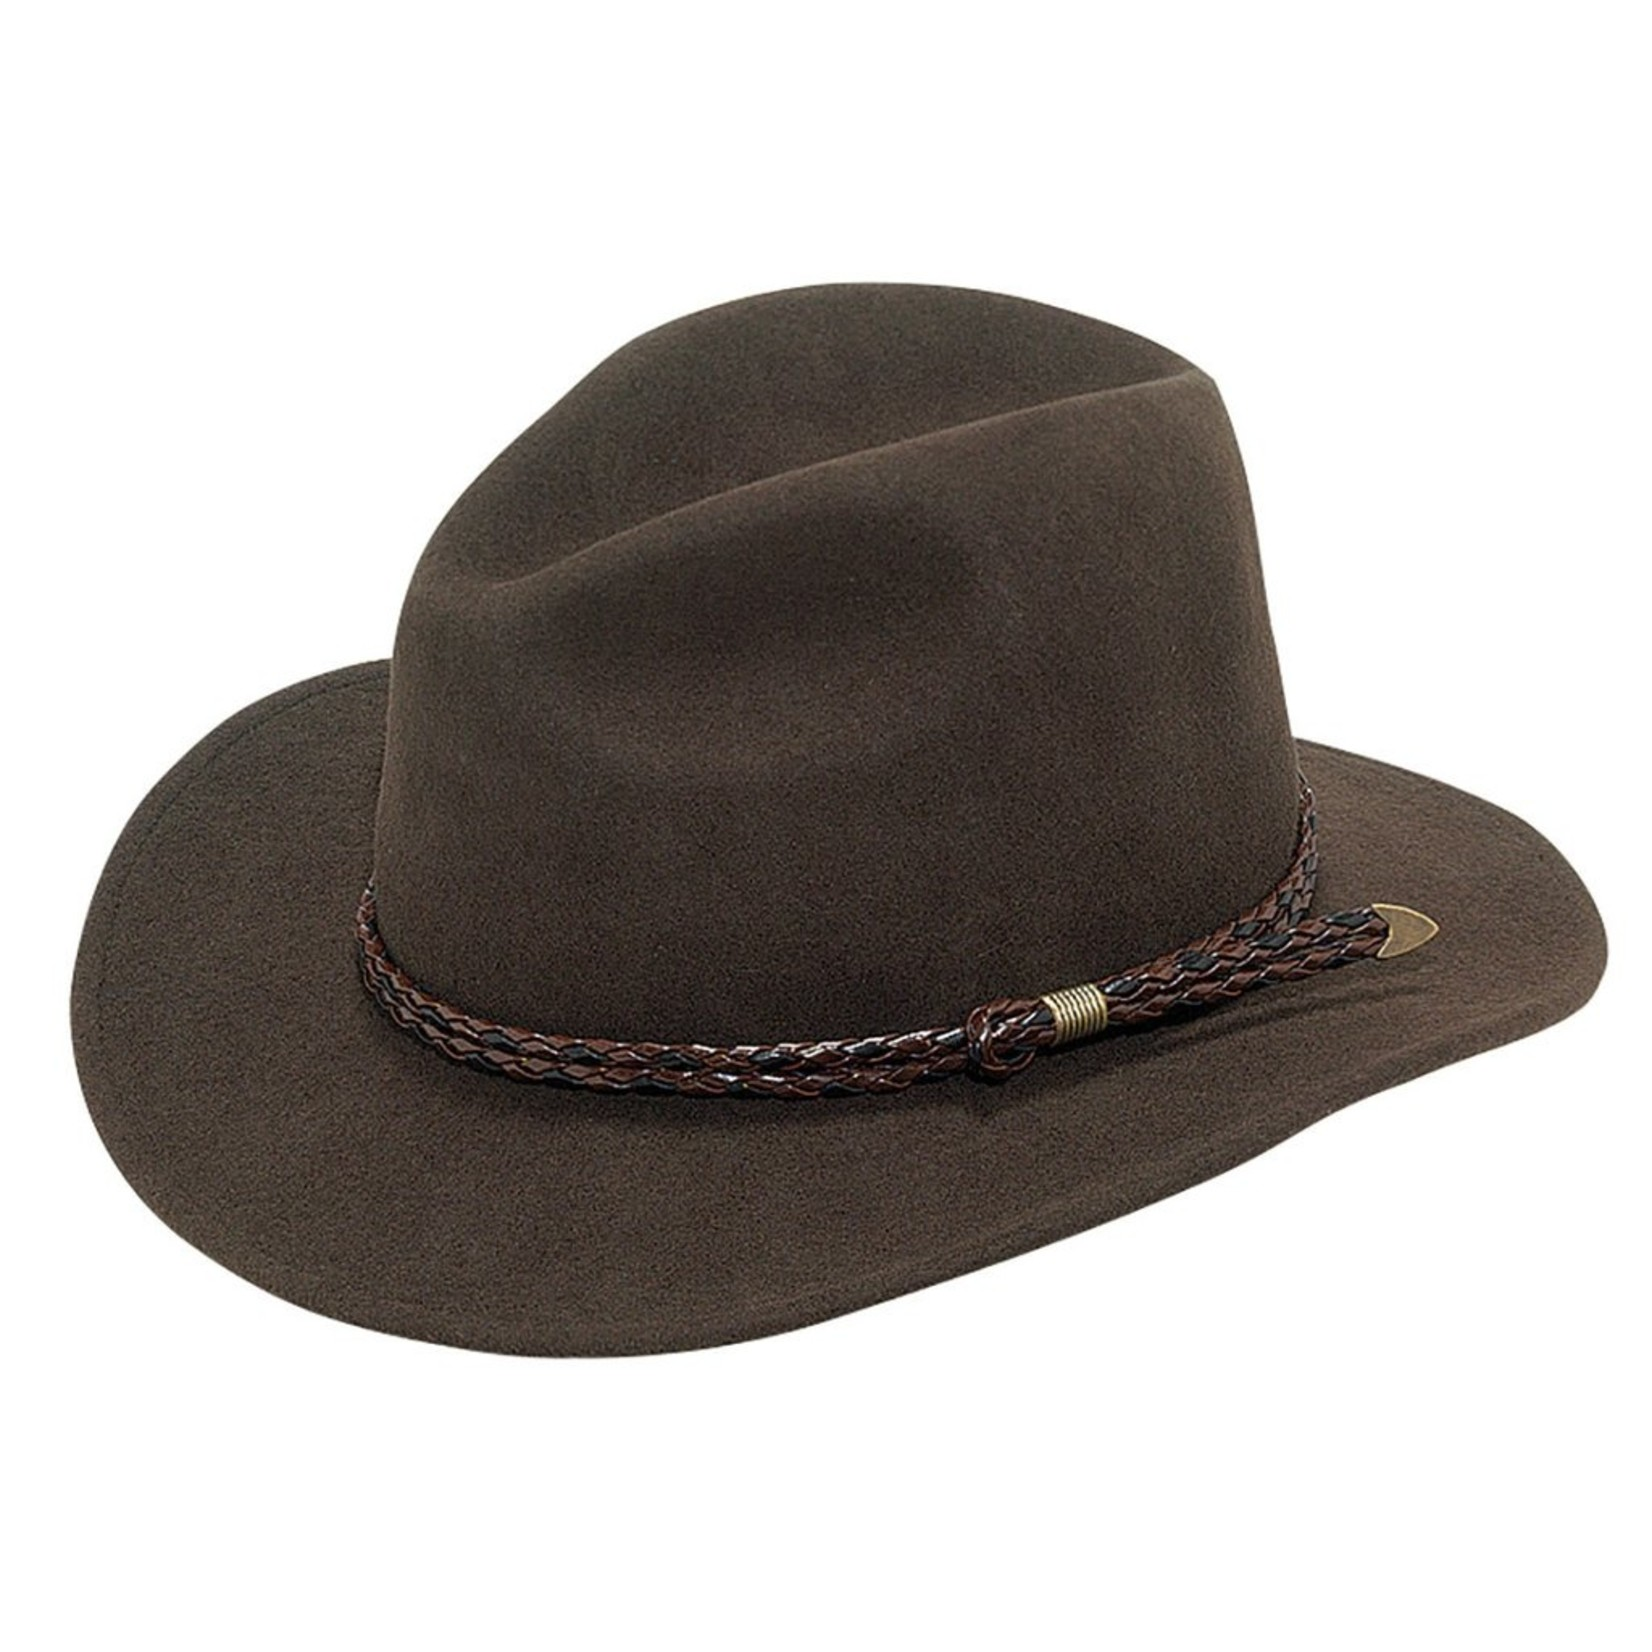 Twister Crushable Wool Brown Omaha 7211402